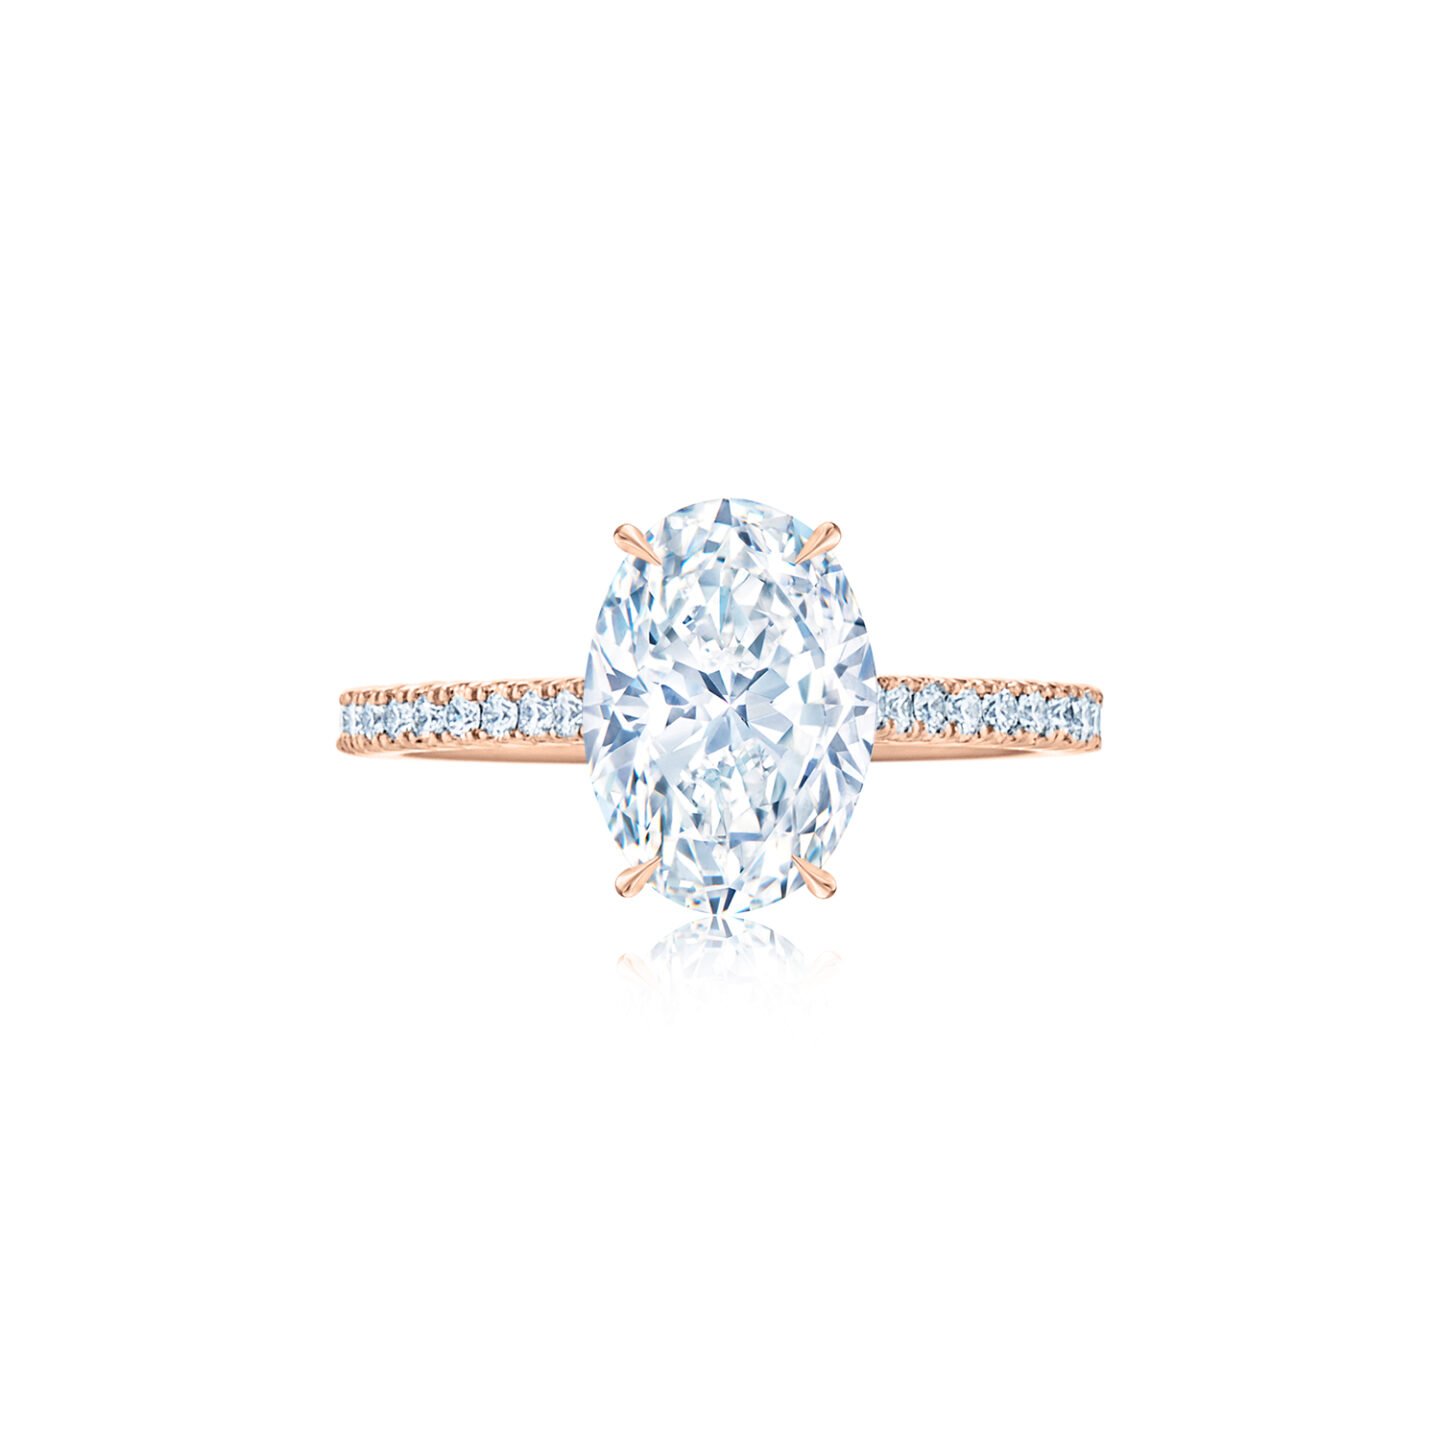 The Kwiat Setting Oval Diamond Engagement Ring With A Thin Pave Diamond Band In 18k Rose